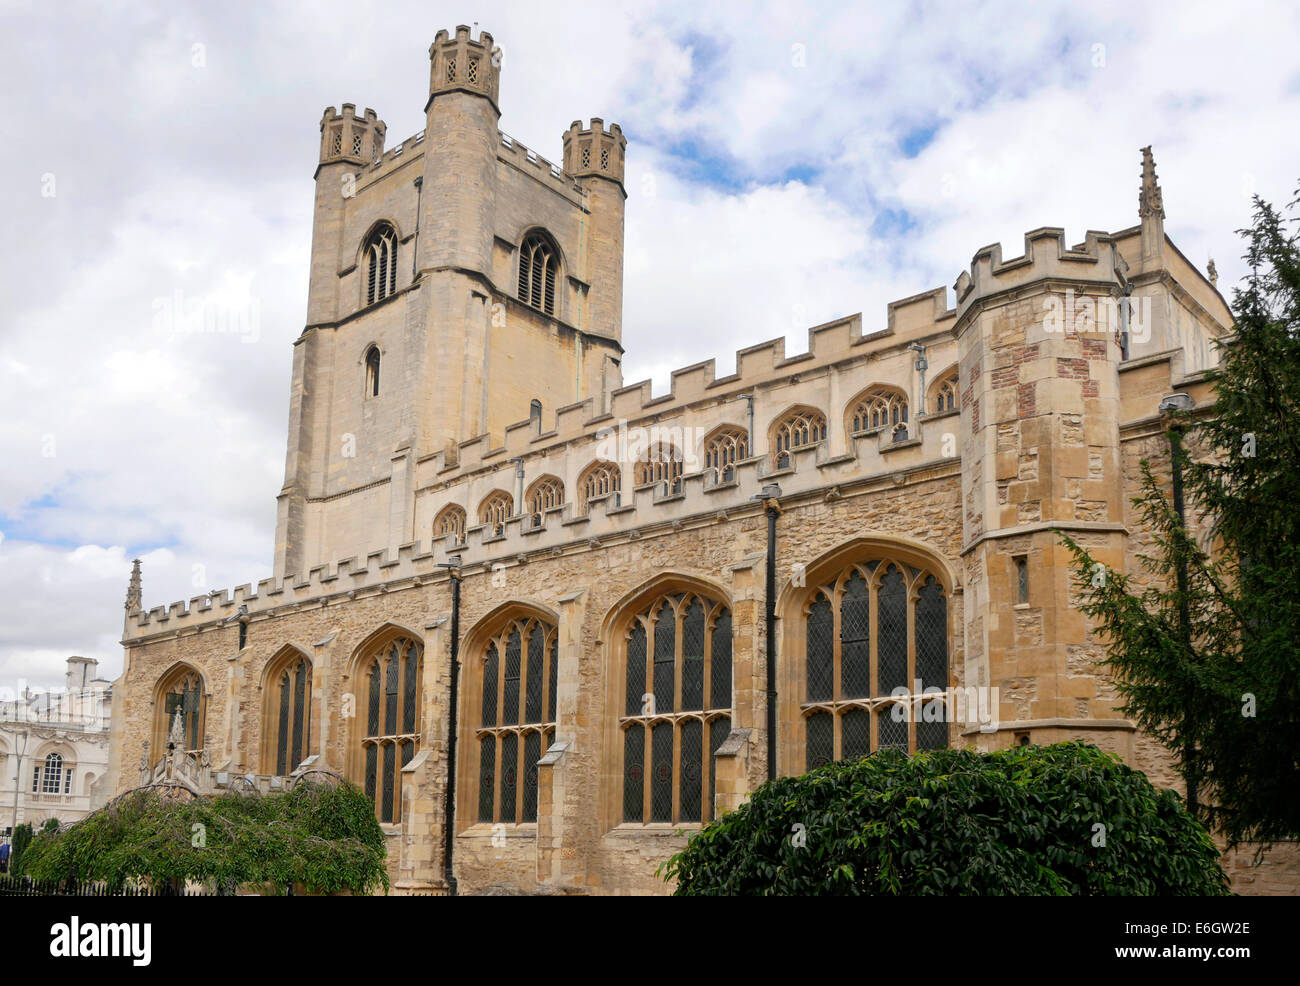 St Mary the Great Church Cambridge England - Stock Image